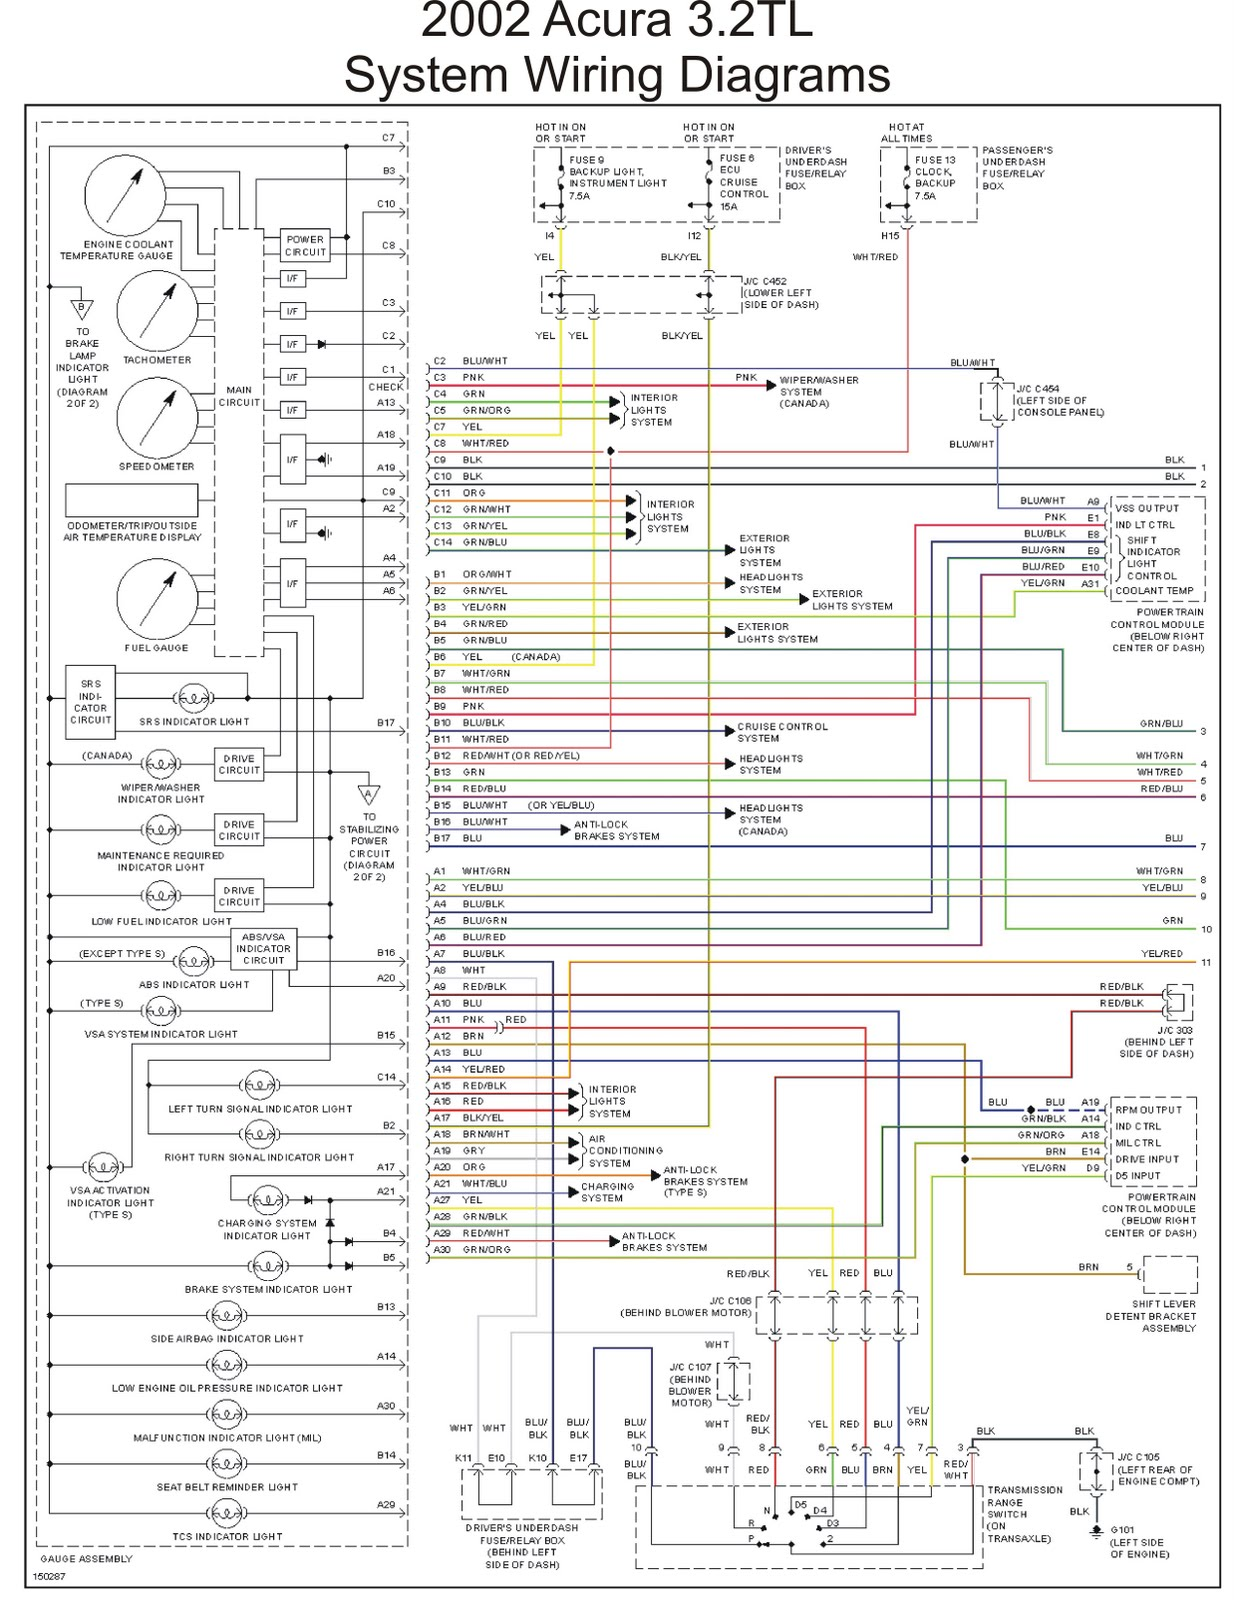 2003 Ford Explorer Sport Trac Engine Diagram Wiring Library 2001 F 150 Abs Diagrams Schematics Horn Fuse